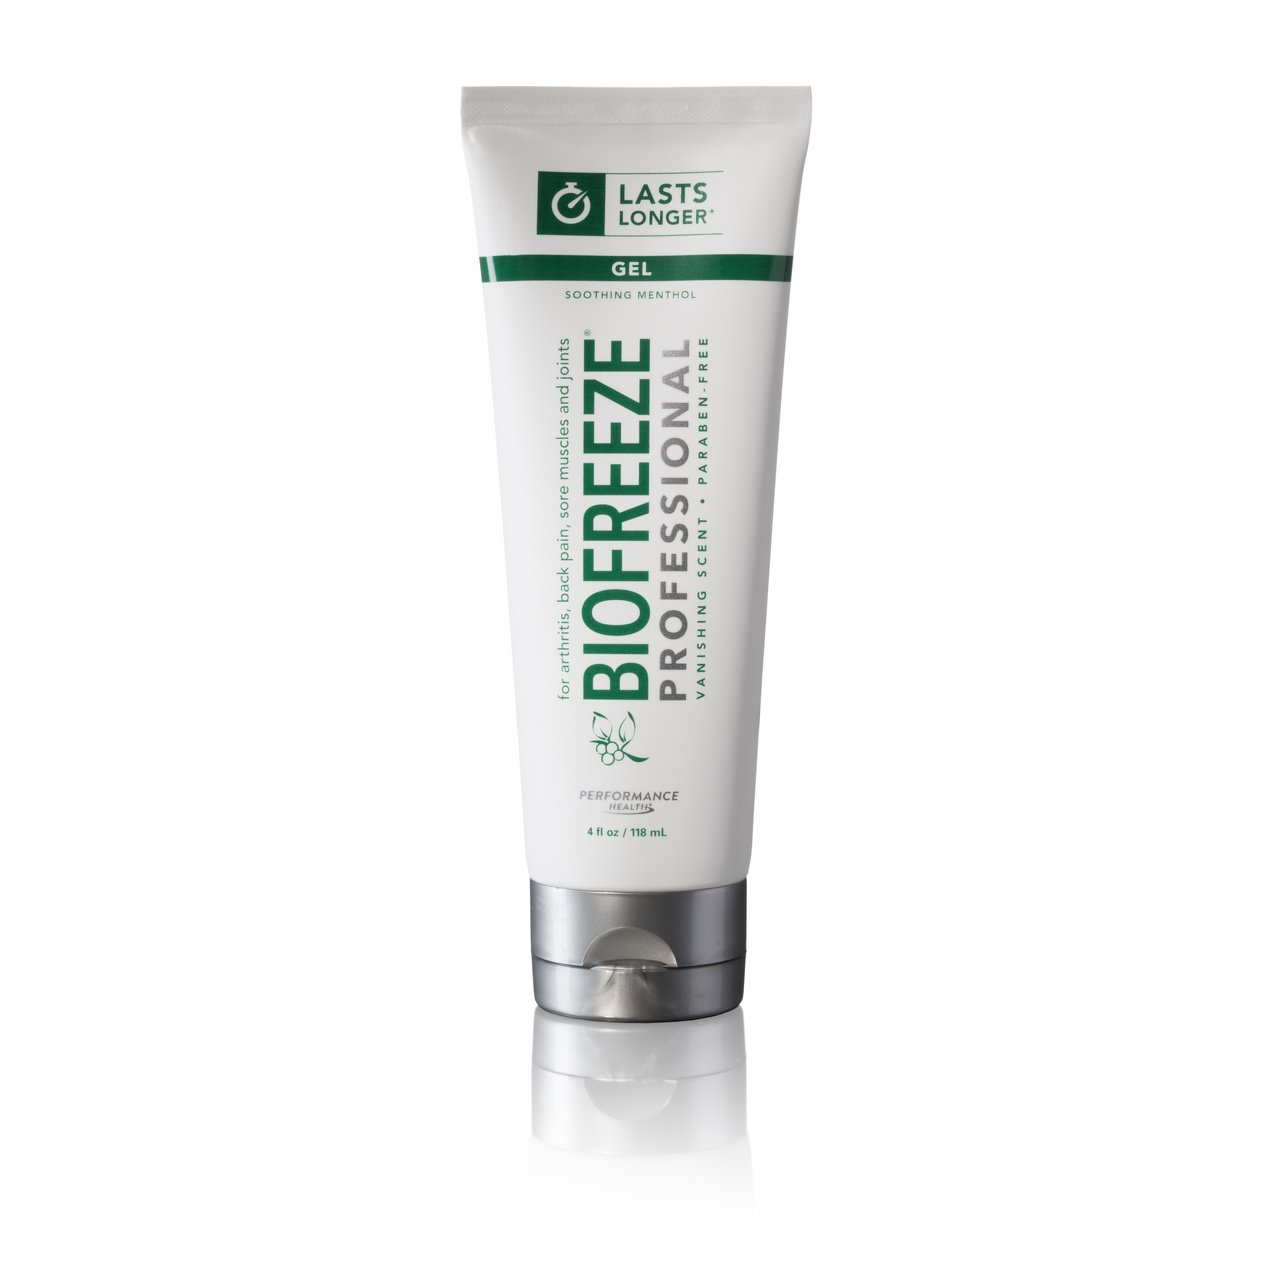 Biofreeze Professional Pain Relieving Gel, Enhanced Relief of Arthritis, Muscle, Joint, and Back Pain, NSAID Free Pain Reliever Cream for Sore Muscles, 4 oz. Tube, Colorless Formula, 5% Menthol Performance Health 13410